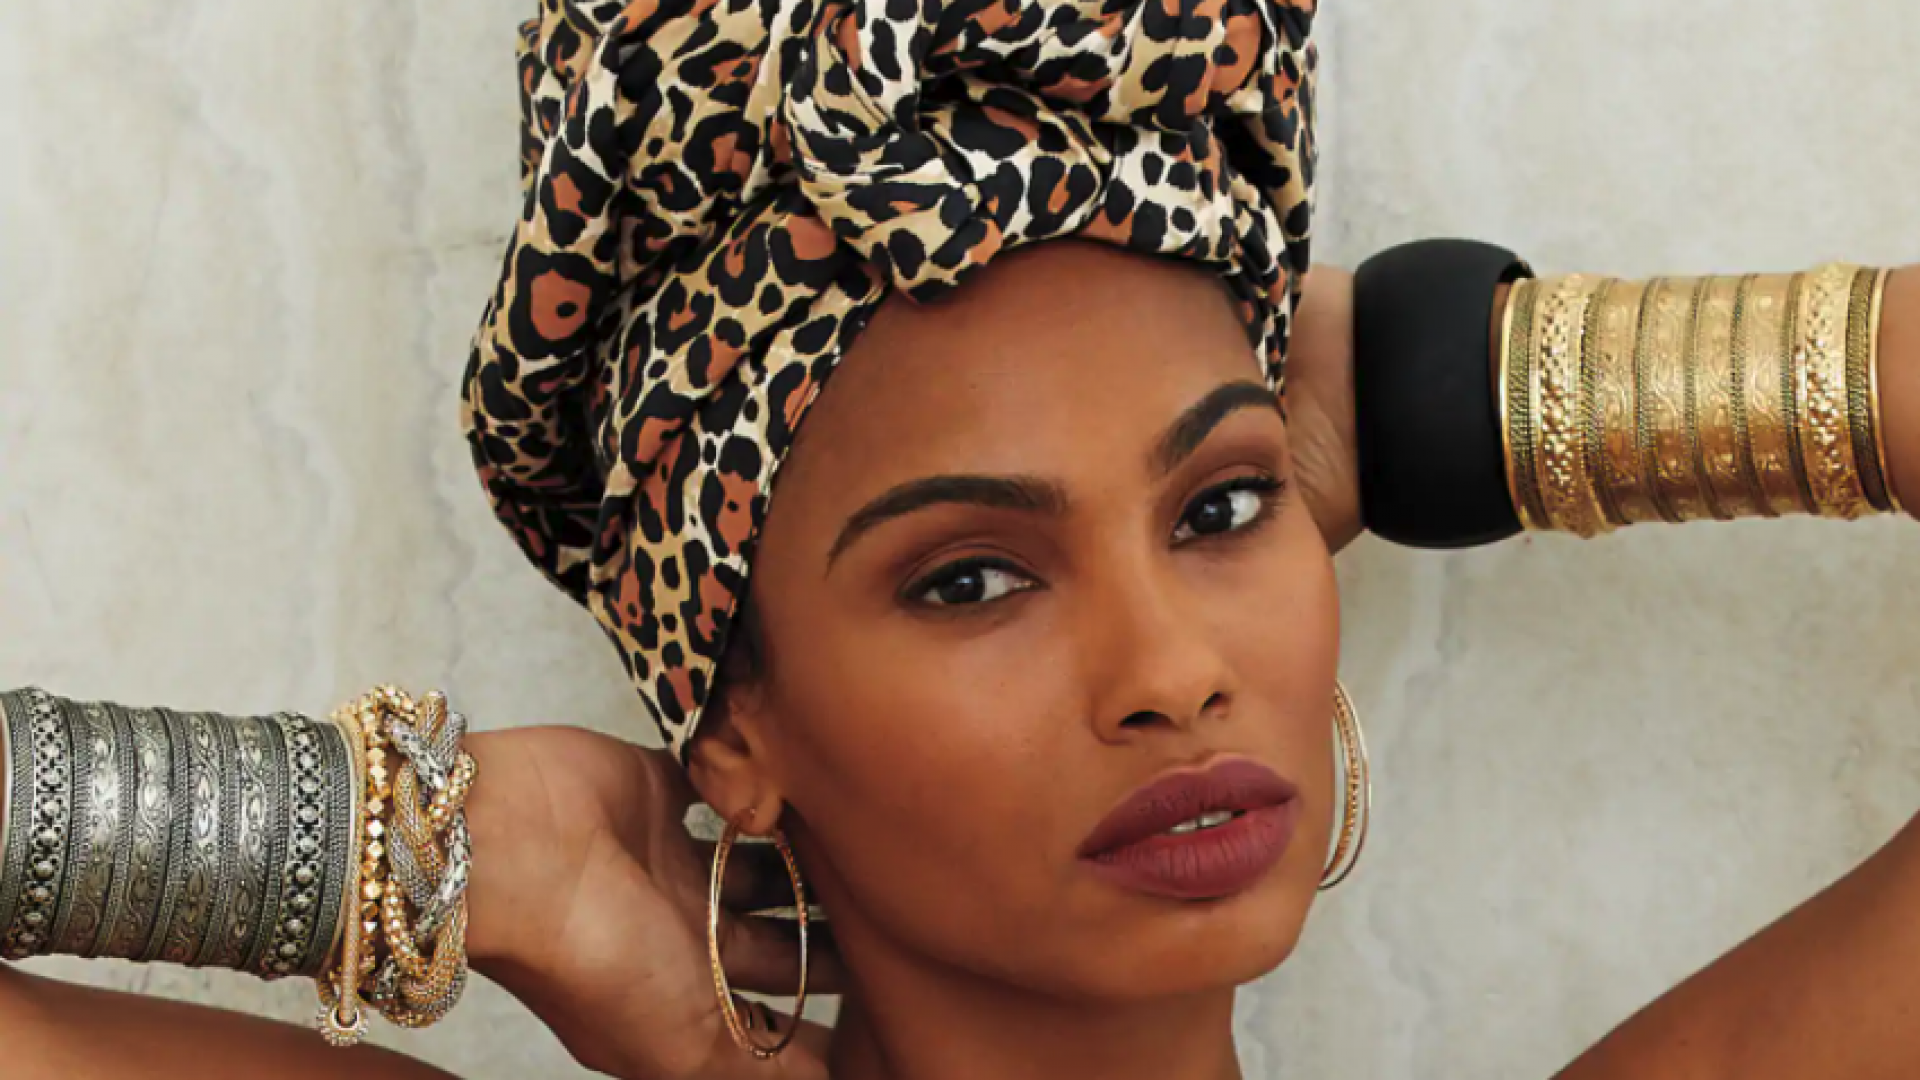 Purveyors of Fashion: A Look Through the History of Black Fashion